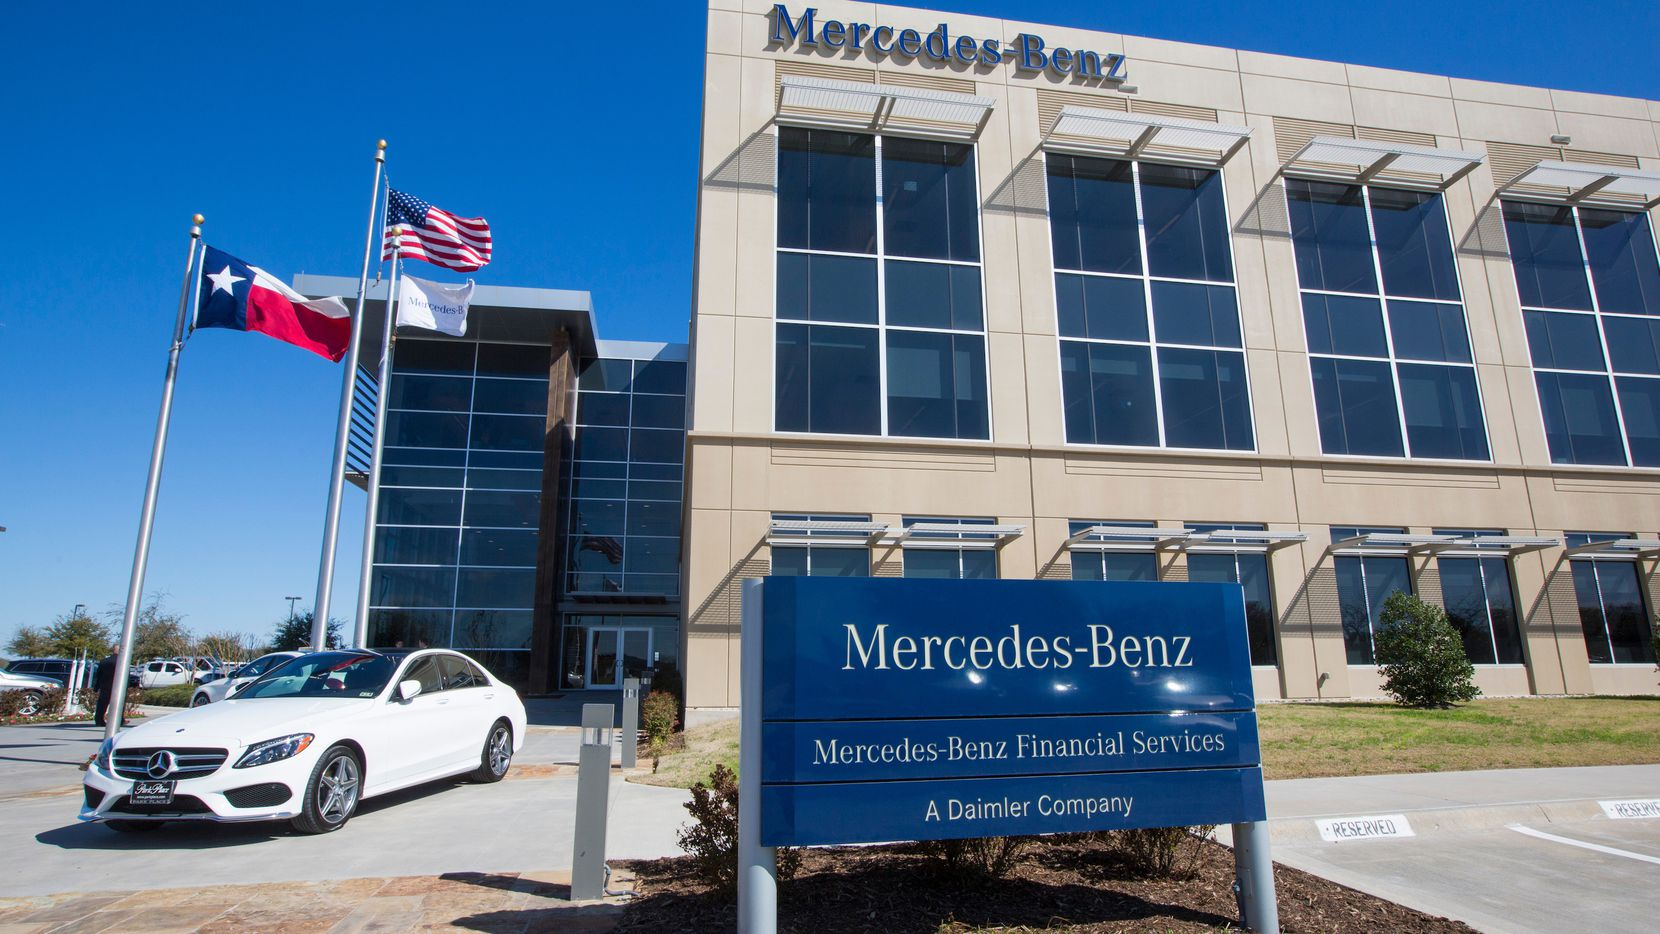 Mercedes-Benz Financial Services has had an office in  North Fort Worth since 2007.